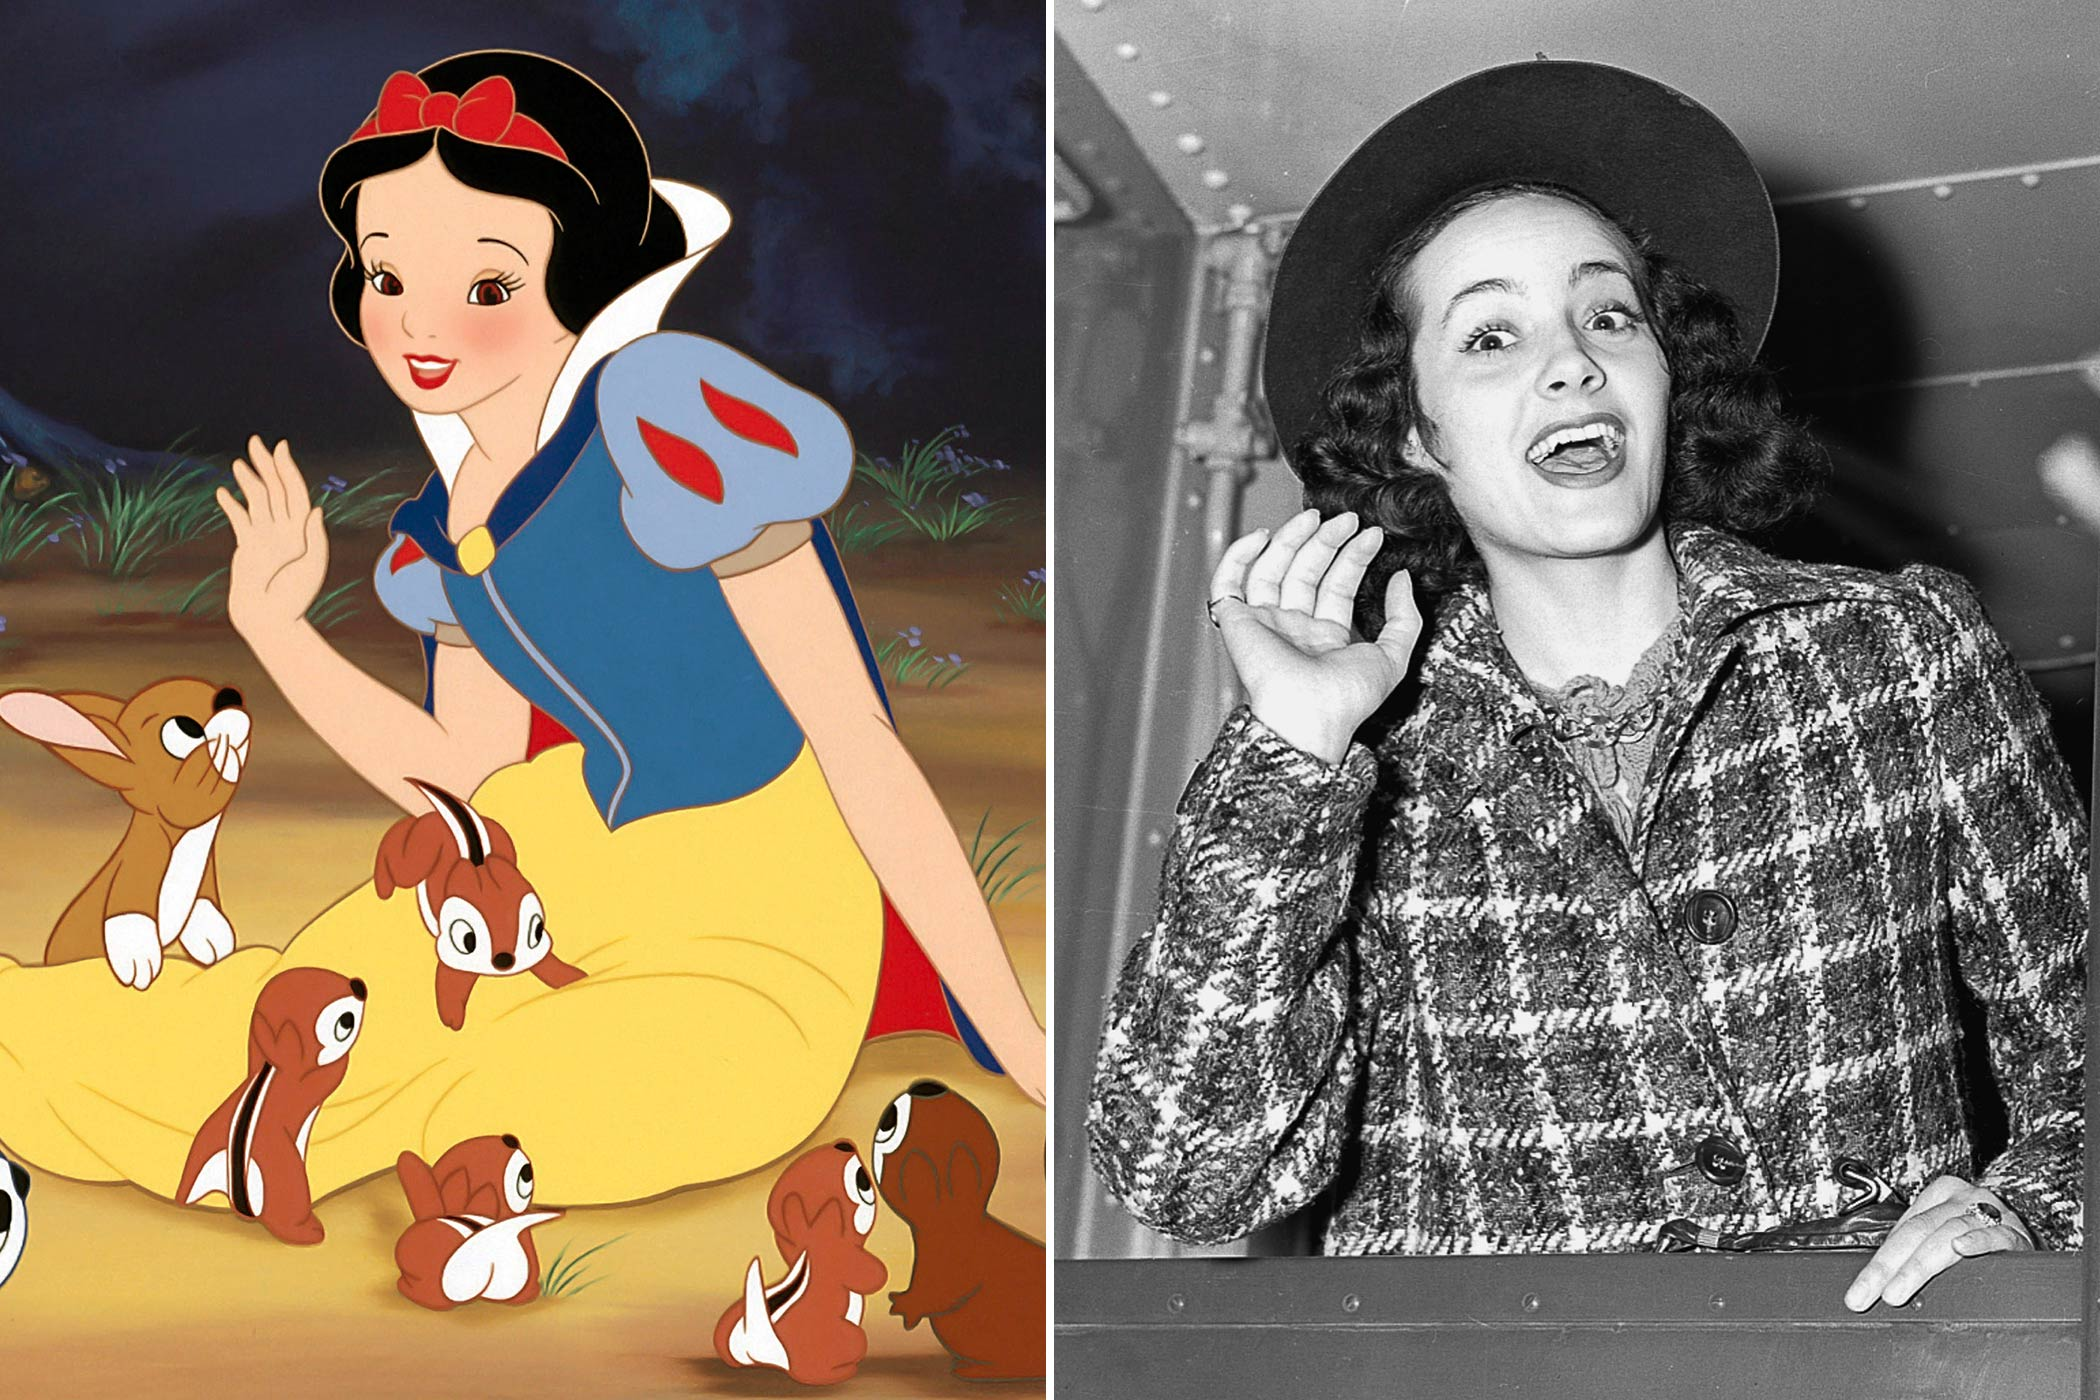 "<strong>Snow White: Adriana Caselotti</strong>                                   More than 150 girls had already auditioned for the role of Snow White before Adriana Caselotti was chosen to voice the first Disney princess. She recalled in 1987, ""I'd never worked in show business before (Snow White). I feel very blessed. Not everyone gets the chance to be part of a genuine classic like Snow White."" Caselotti would also be inducted into the Disney Legends in 1994."